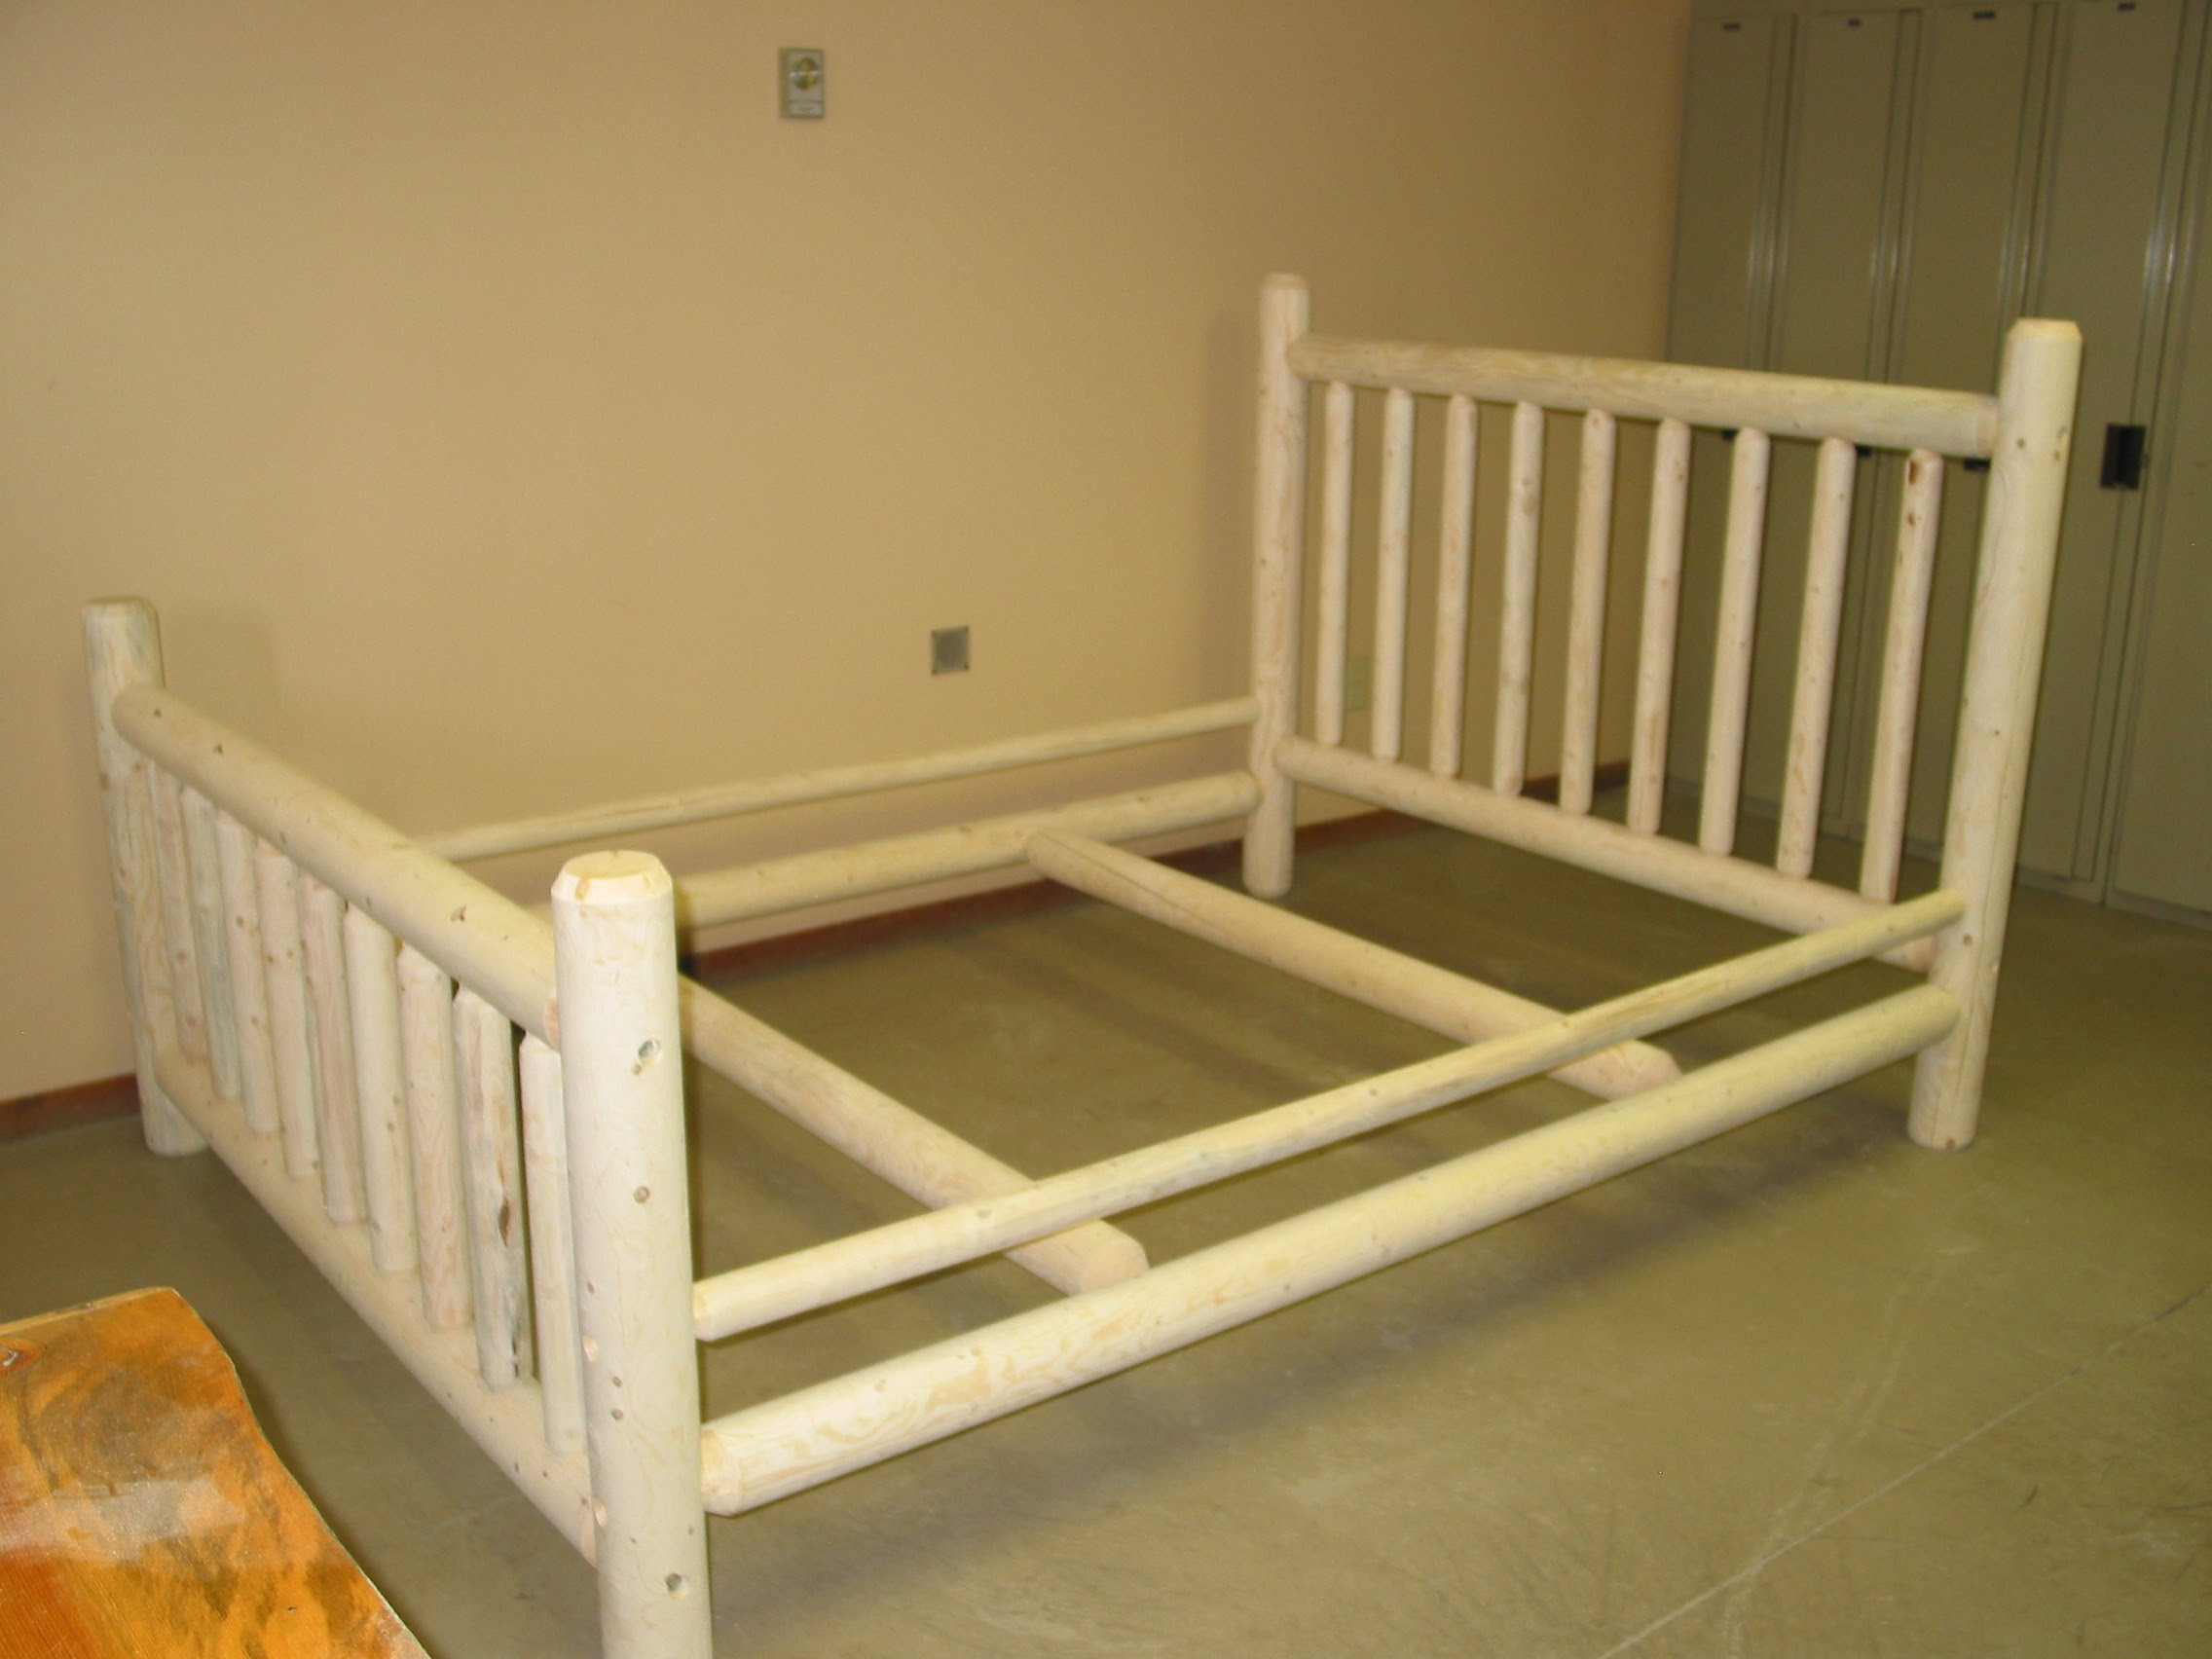 Nice Bed kits use a doweled and socket construction for strength and durability